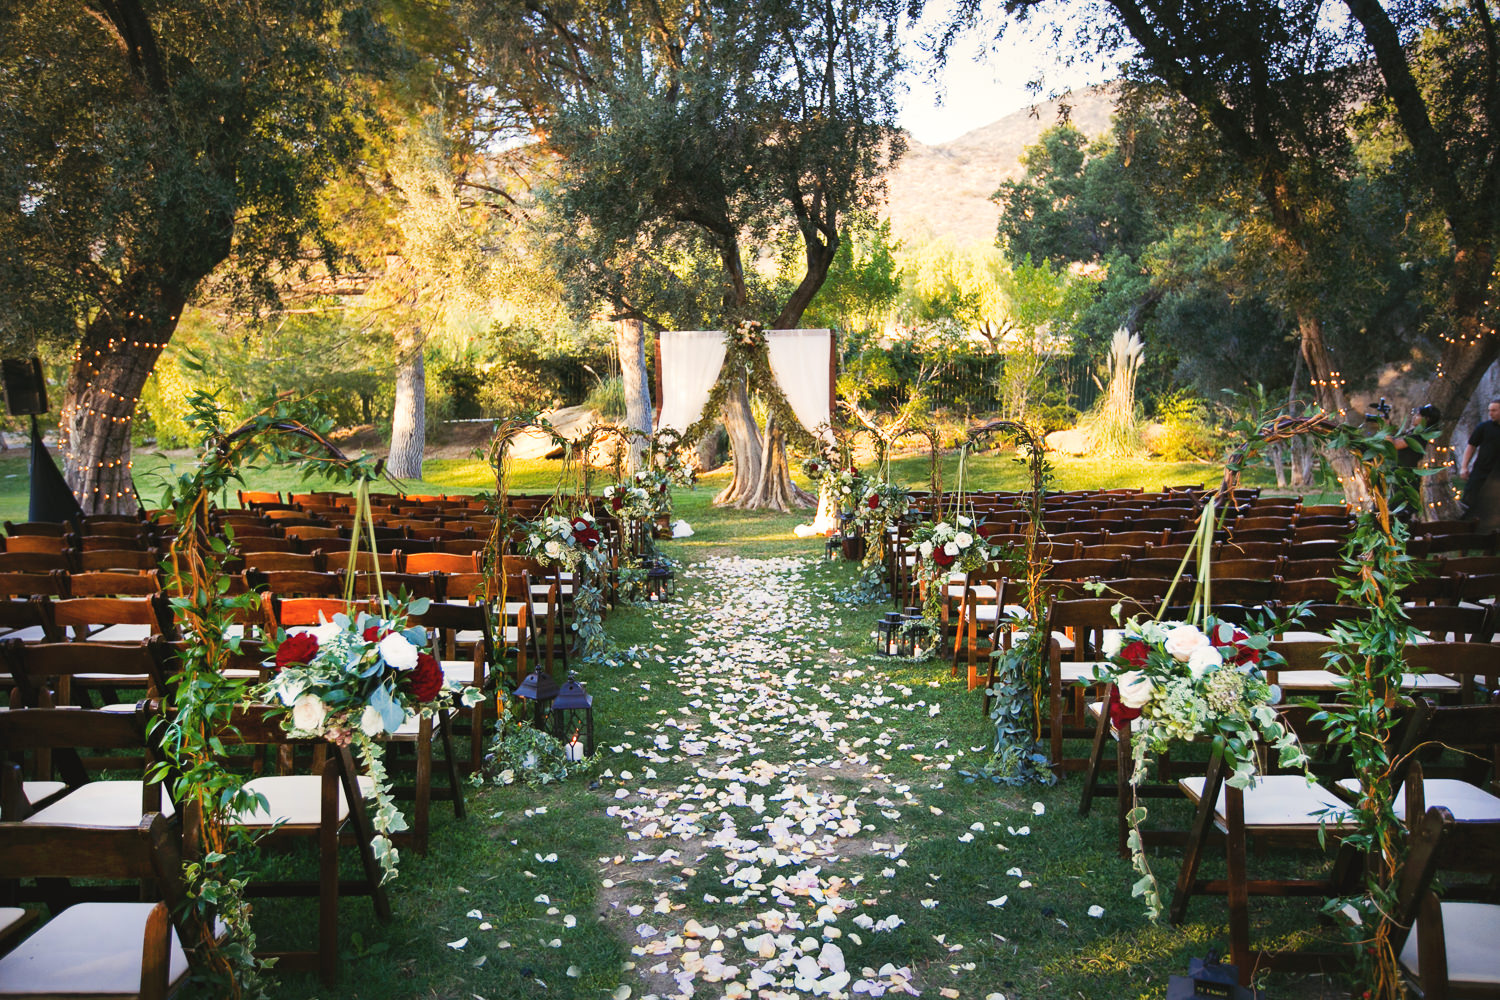 Wedding ceremony designed and planned by Stacy Porras at Hummingbird Nest wedding by Callaway Gable